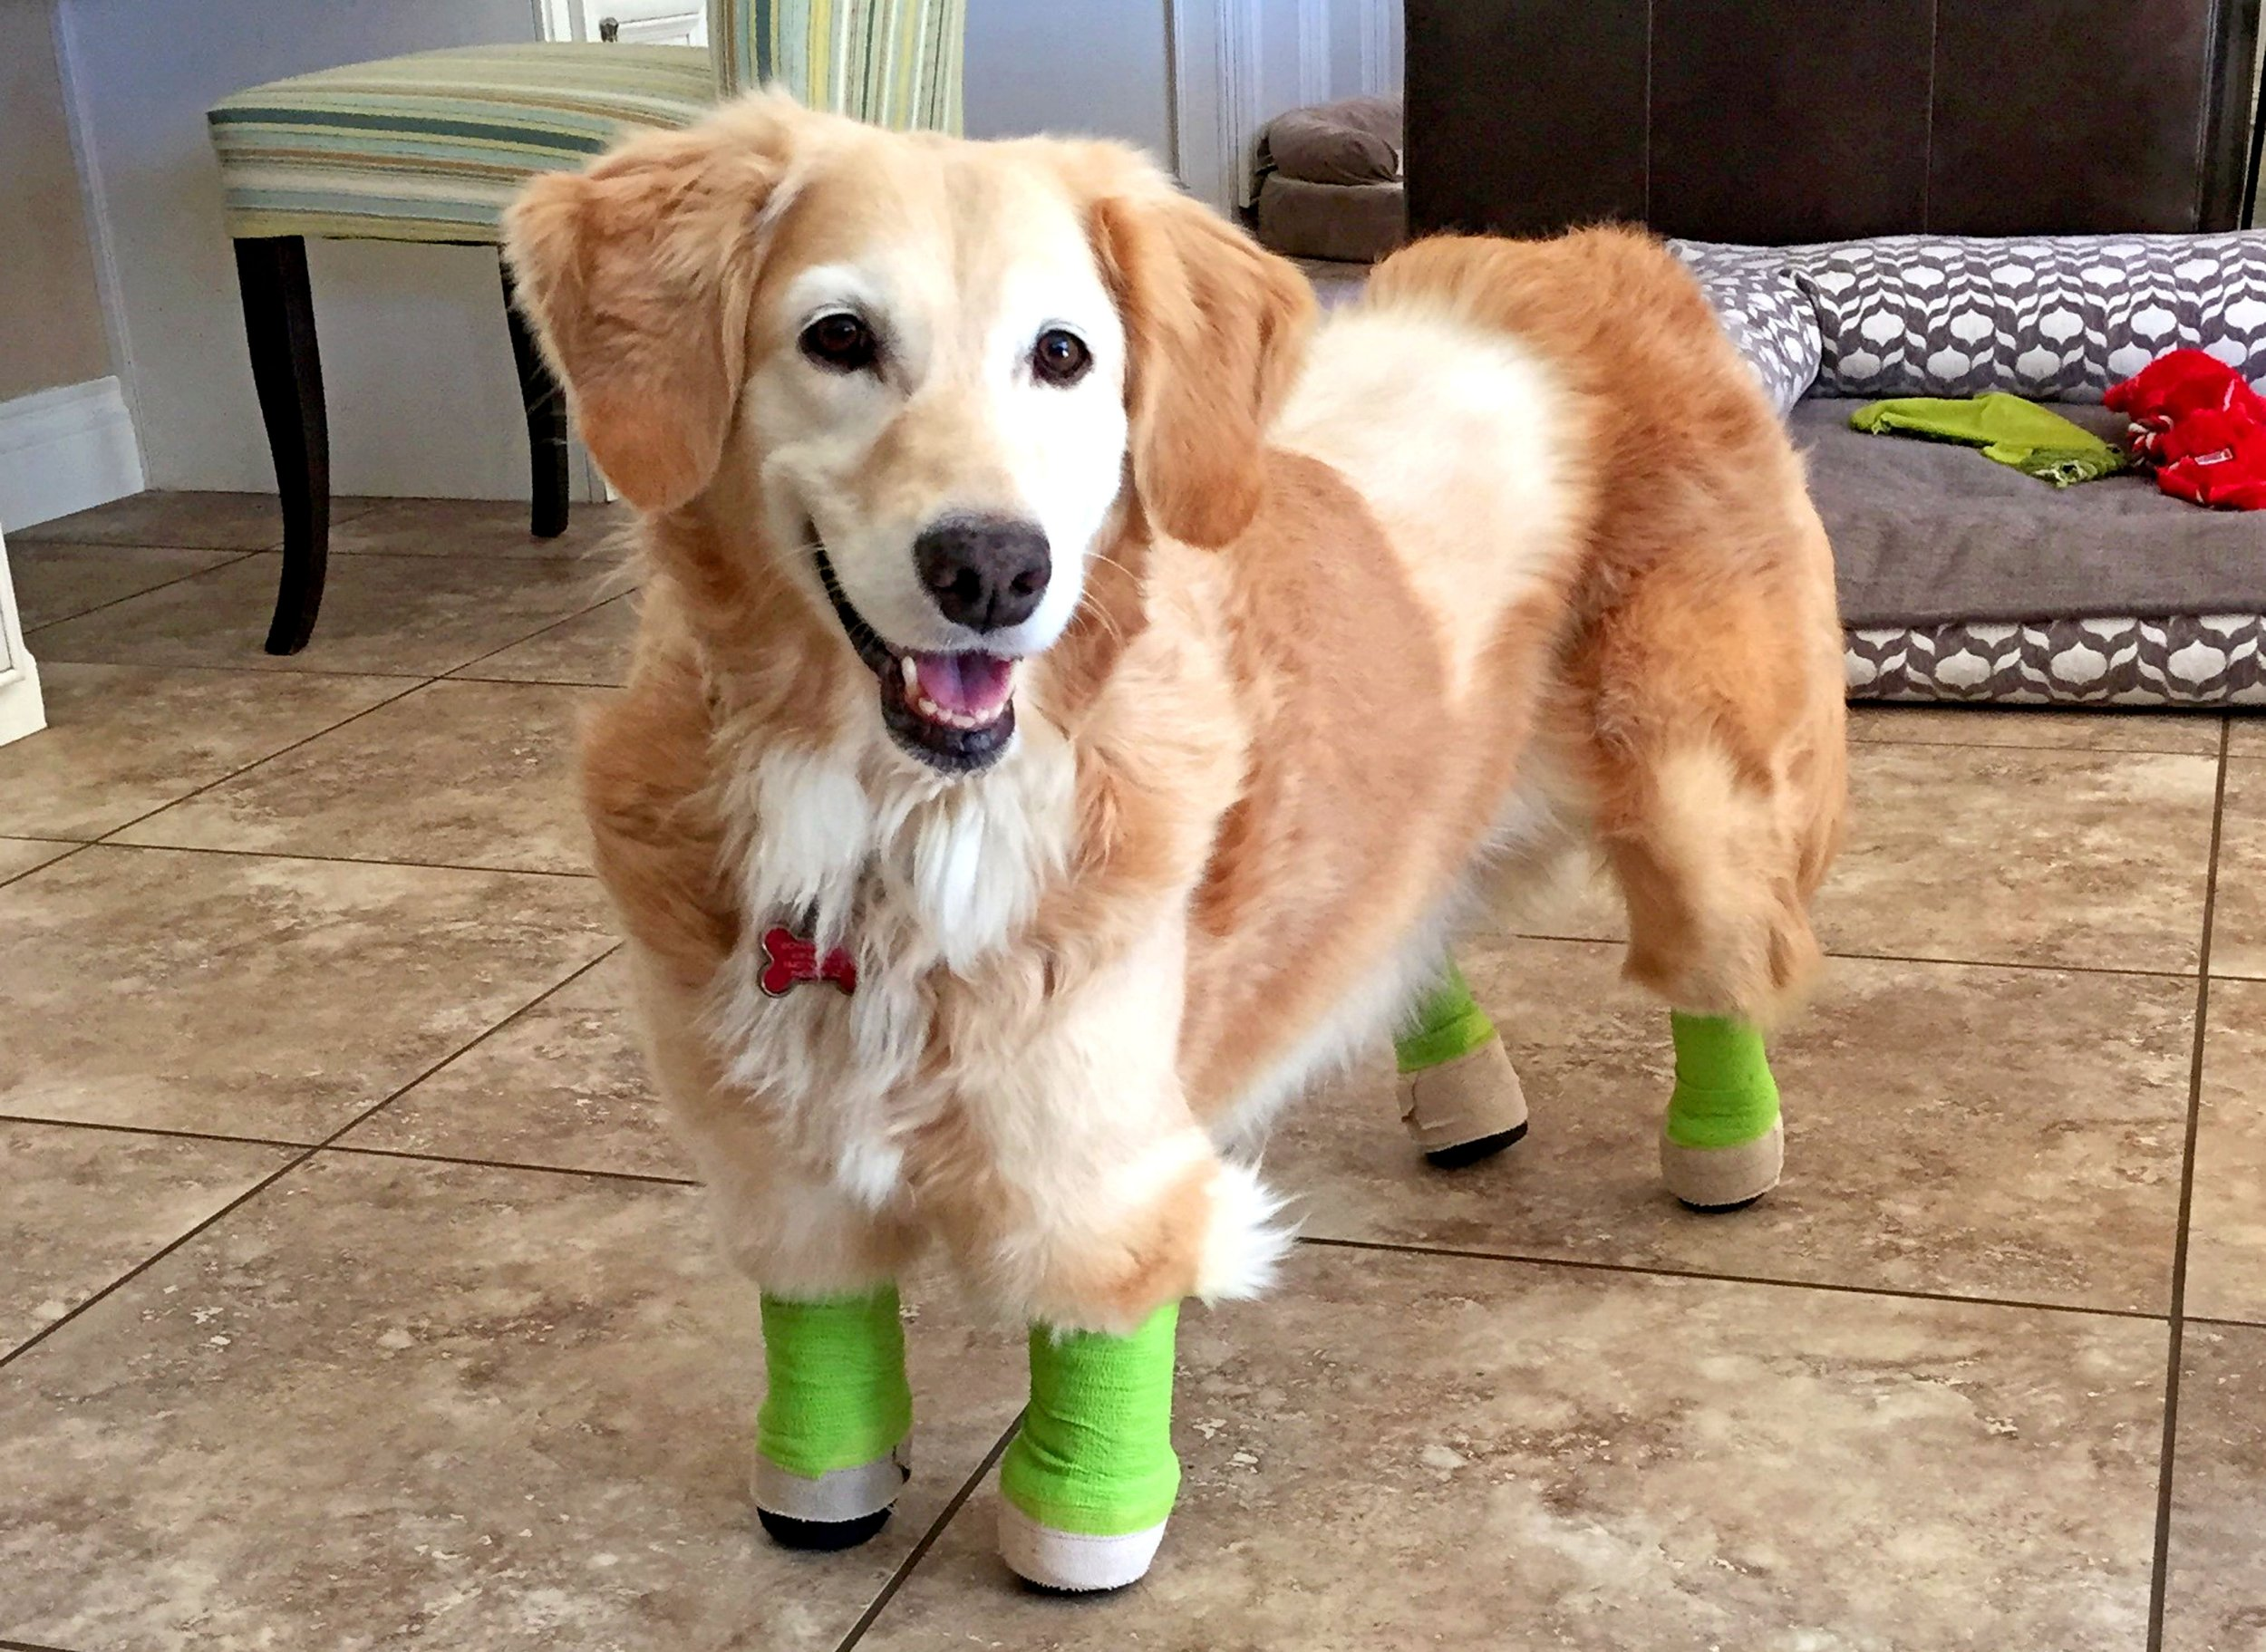 PIC FROM CATERS NEWS - (PICTURED: Chi Chi wears her prosthetics and bandages on her legs.) - A golden retriever has finally walked with prosthetics after a quadruple amputation saved her life. The adorable pooch, named Chi Chi, was left for dead outside a dog meat farm in South Korea, where she had been tied up by her paws to prepare her for slaughter. The tight bindings ate away at her flesh and after the farmers deemed her unworthy for food, she was disposed of in a rubbish bag. Thankfully, she was found by an animal welfare group and in a bid to save her life they amputated all four paws. Chi Chi was then flown 6,000 miles to Arizona, USA, where Elizabeth, 45, and Richard Howell, 44, welcomed her into their home. SEE CATERS COPY.